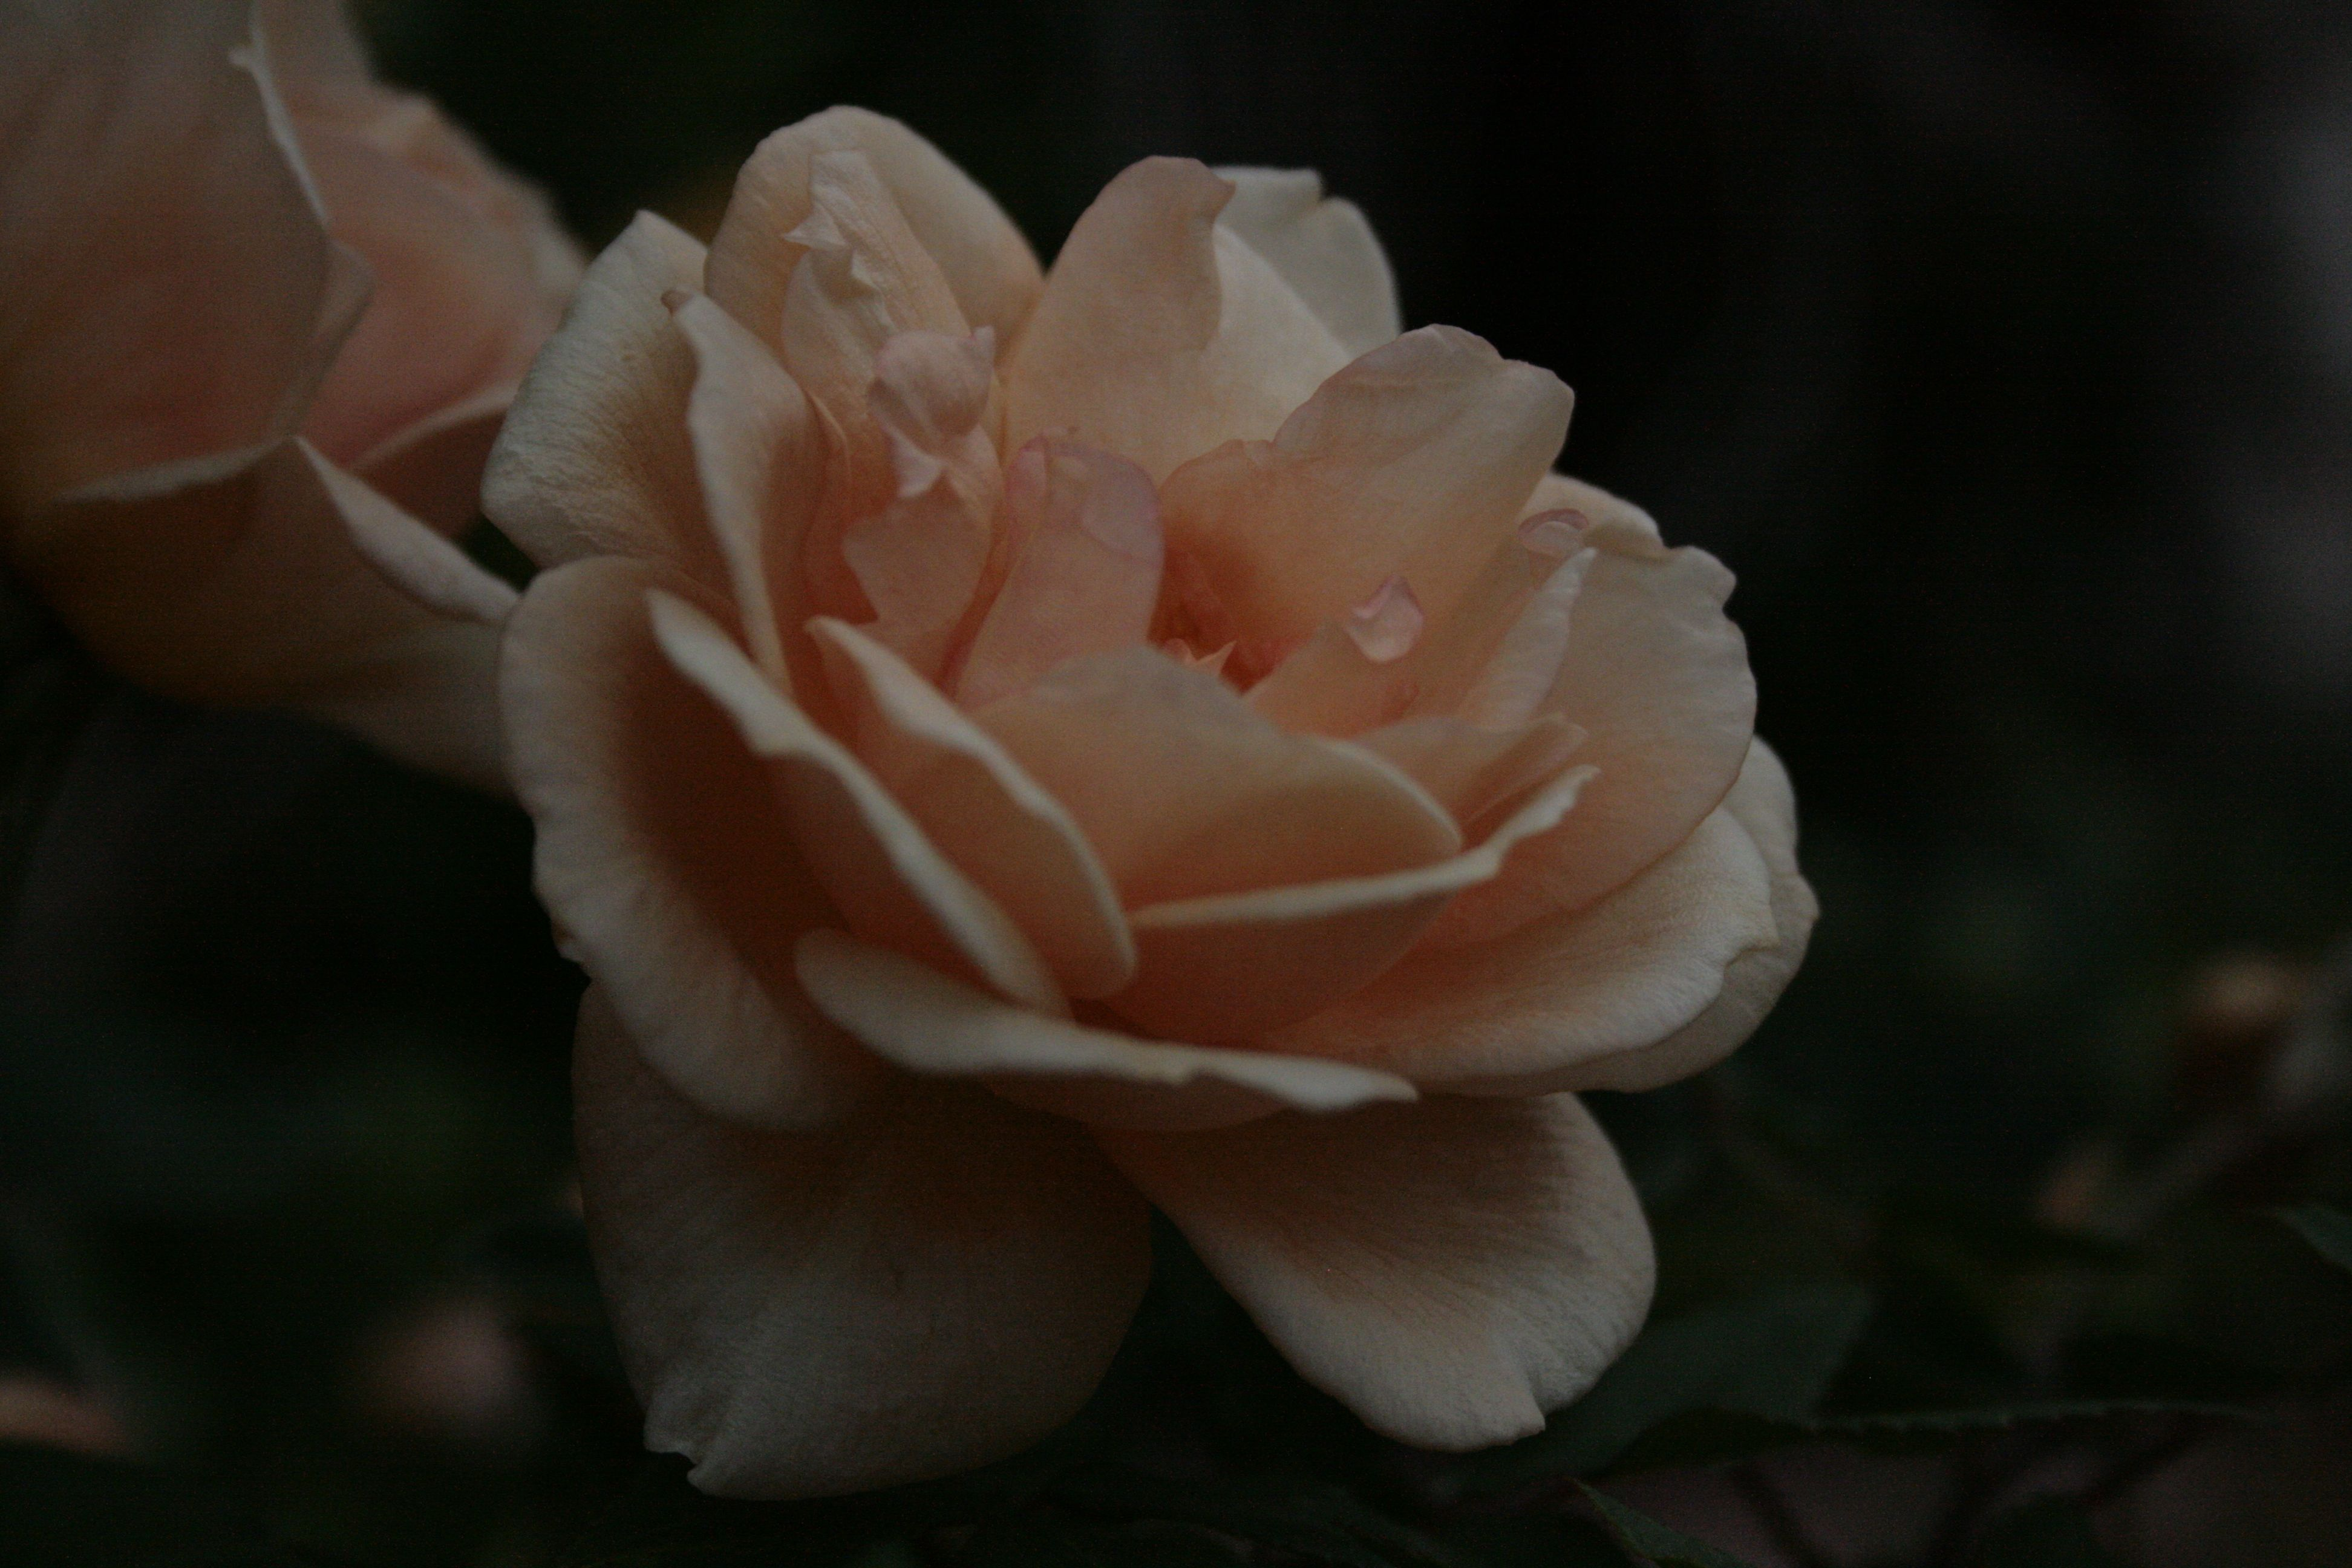 I love how delicate and beautiful the petals appear